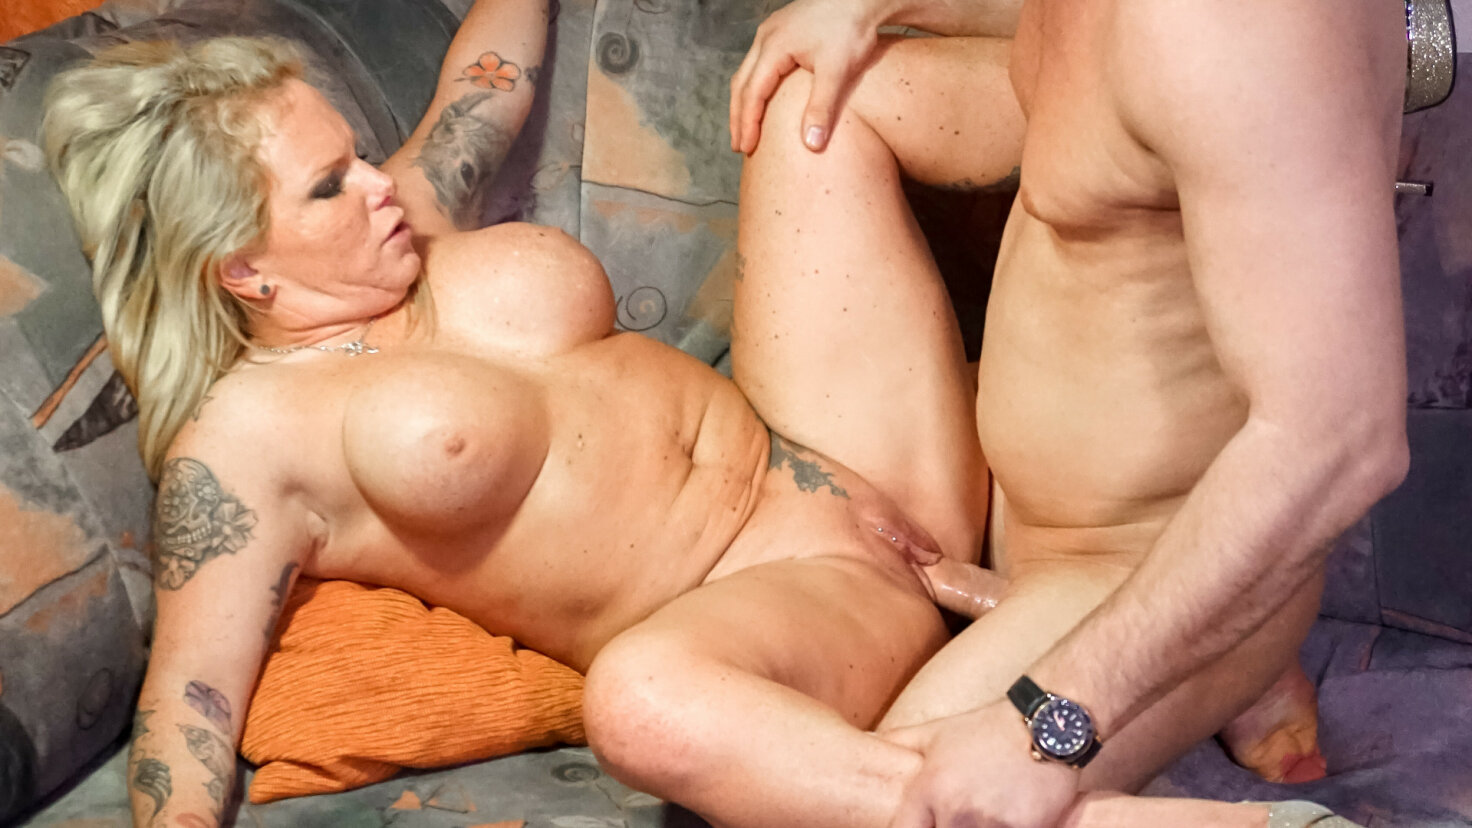 A busty blonde German babe with curves rides a dick during amateur sex tape